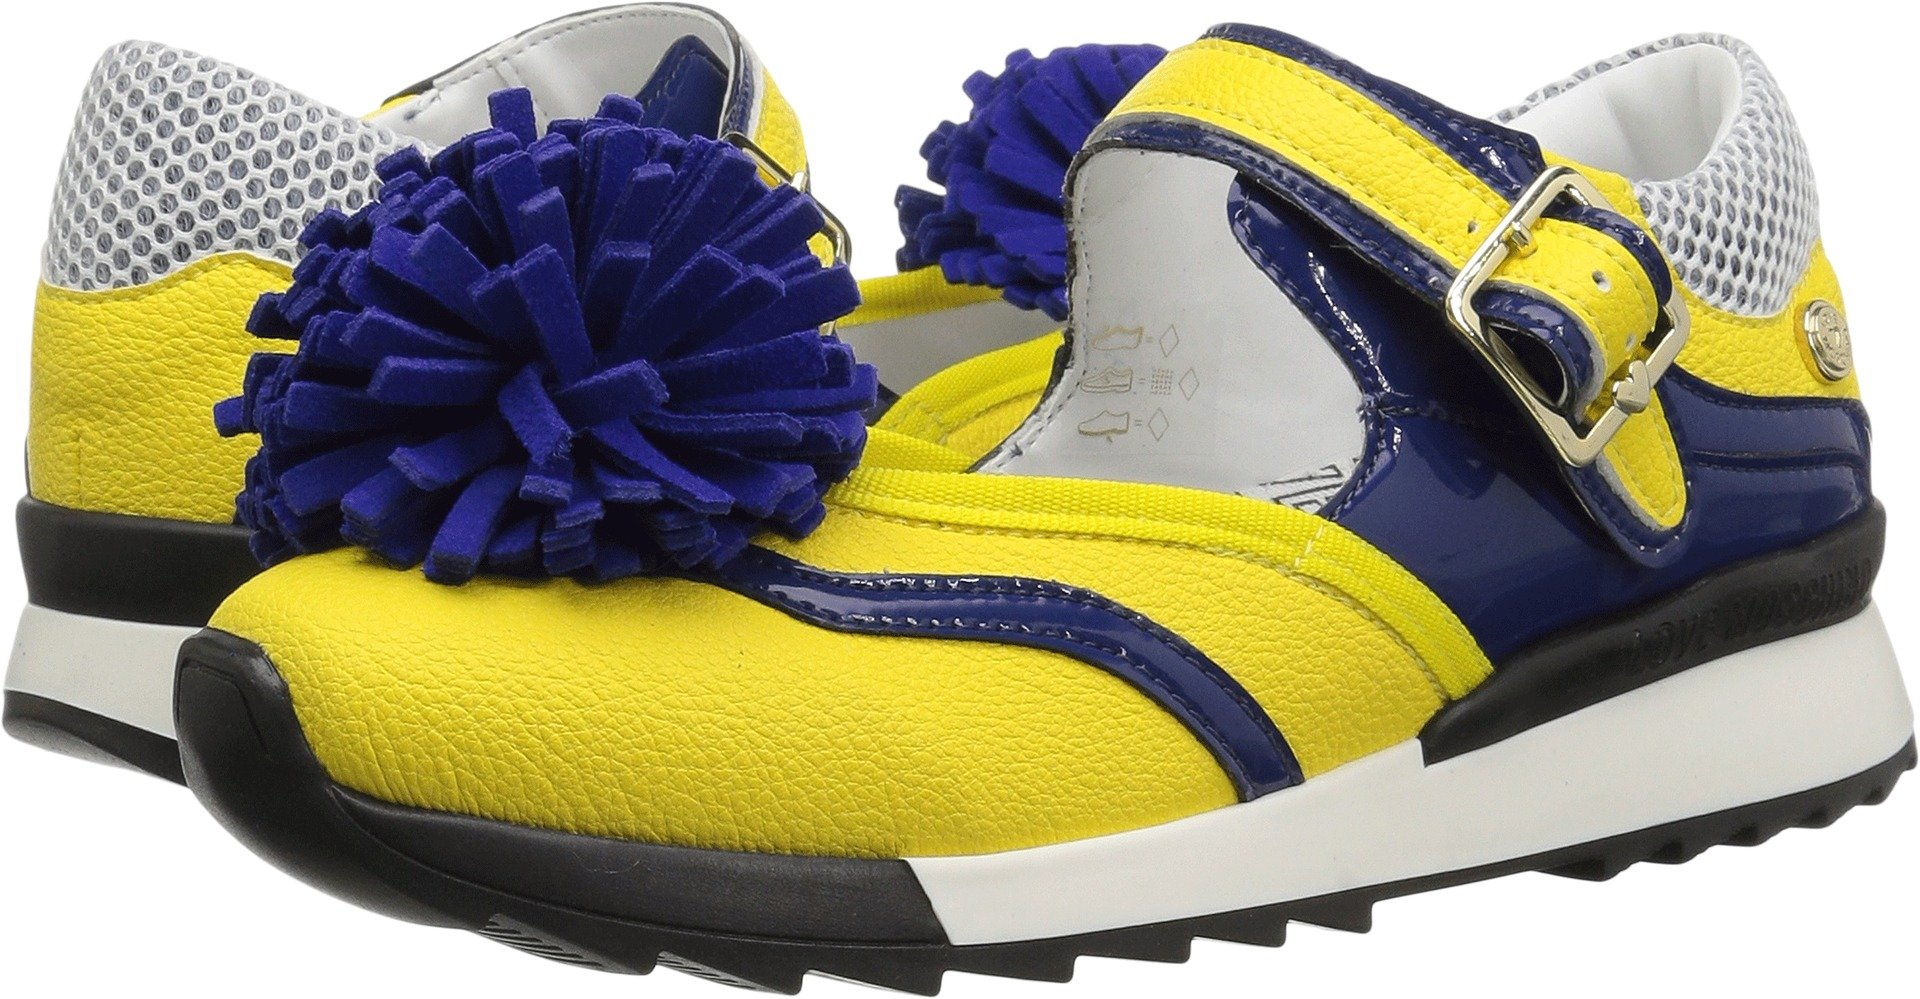 Love Moschino Women's JA15102G15ID140A Sneaker, Yellow/Blue, 38 M EU (7 US)